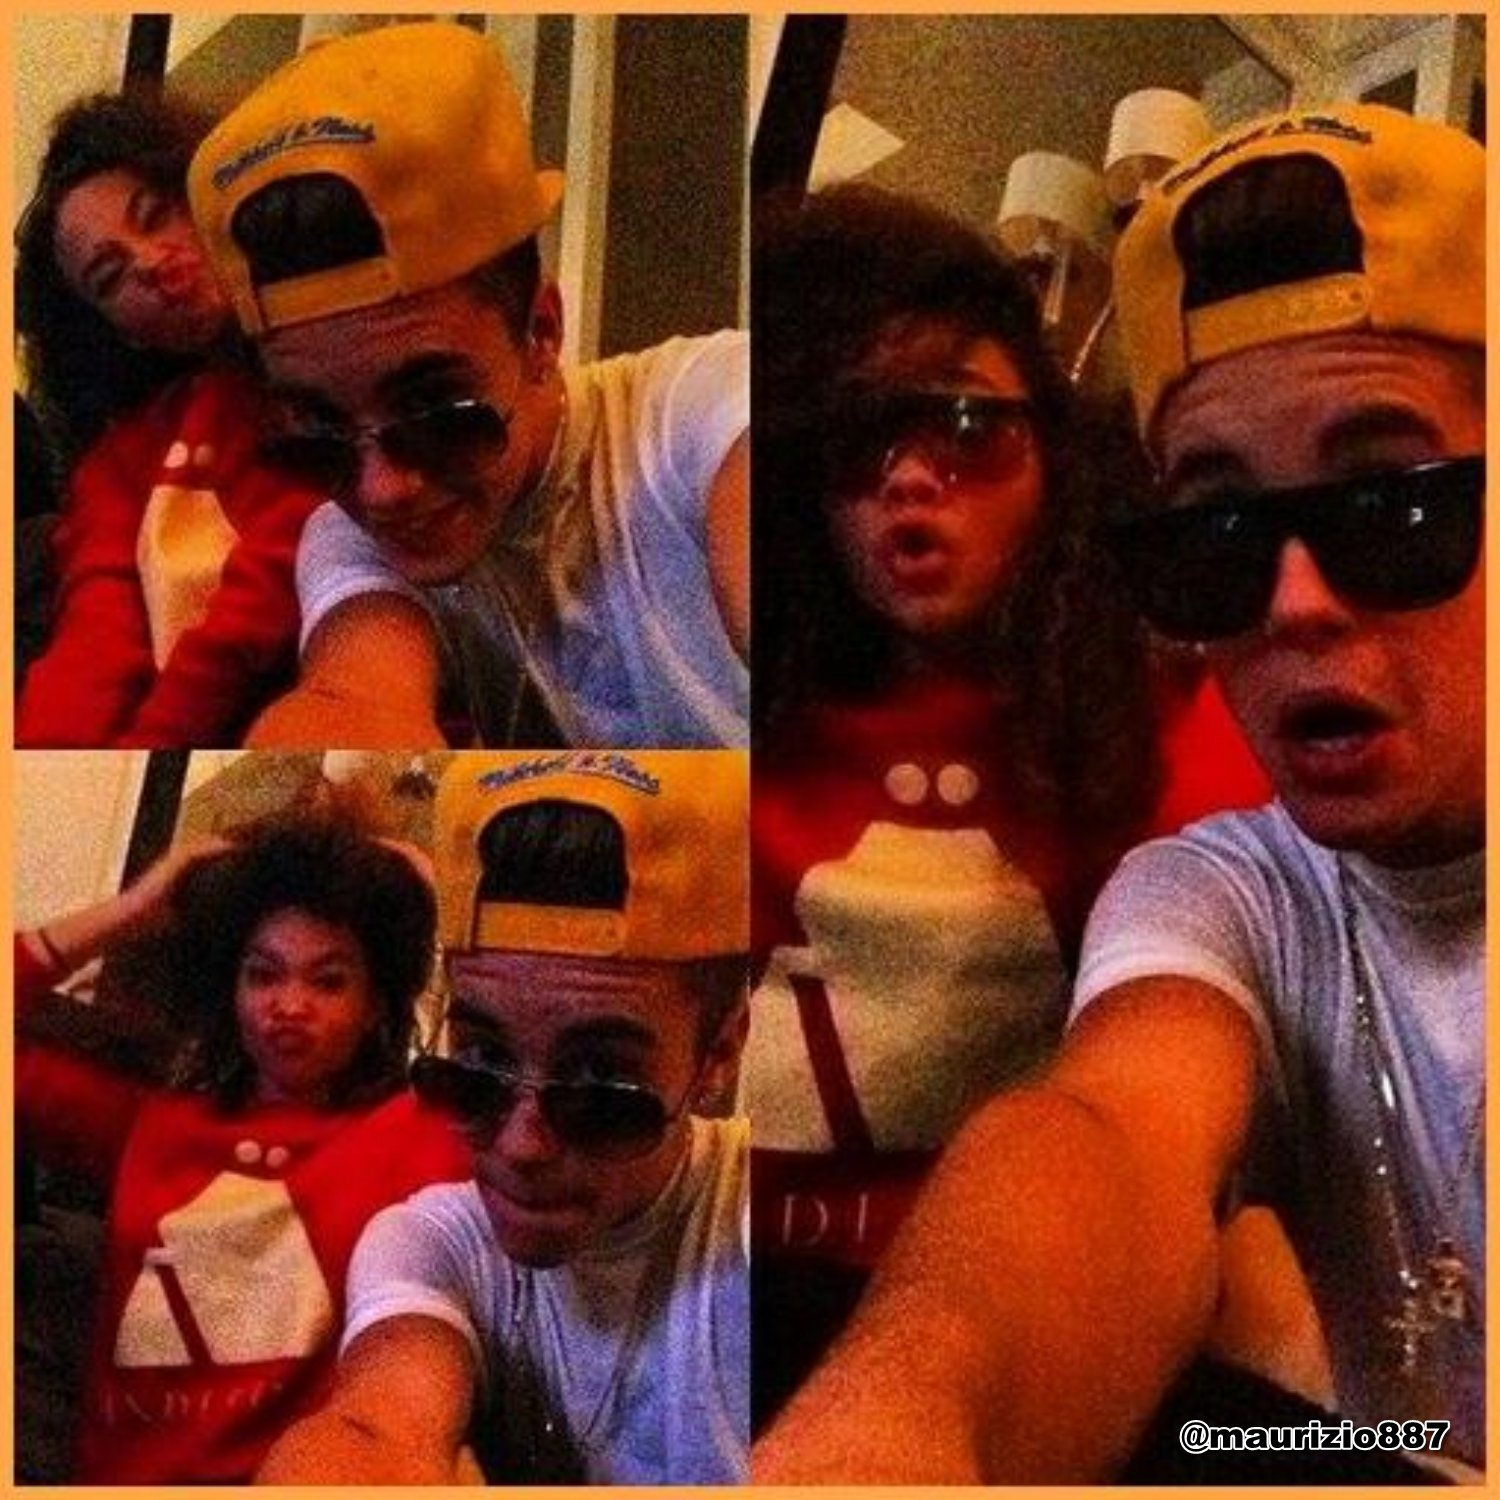 Justin Bieber bieber & Ashley Moore, 2013